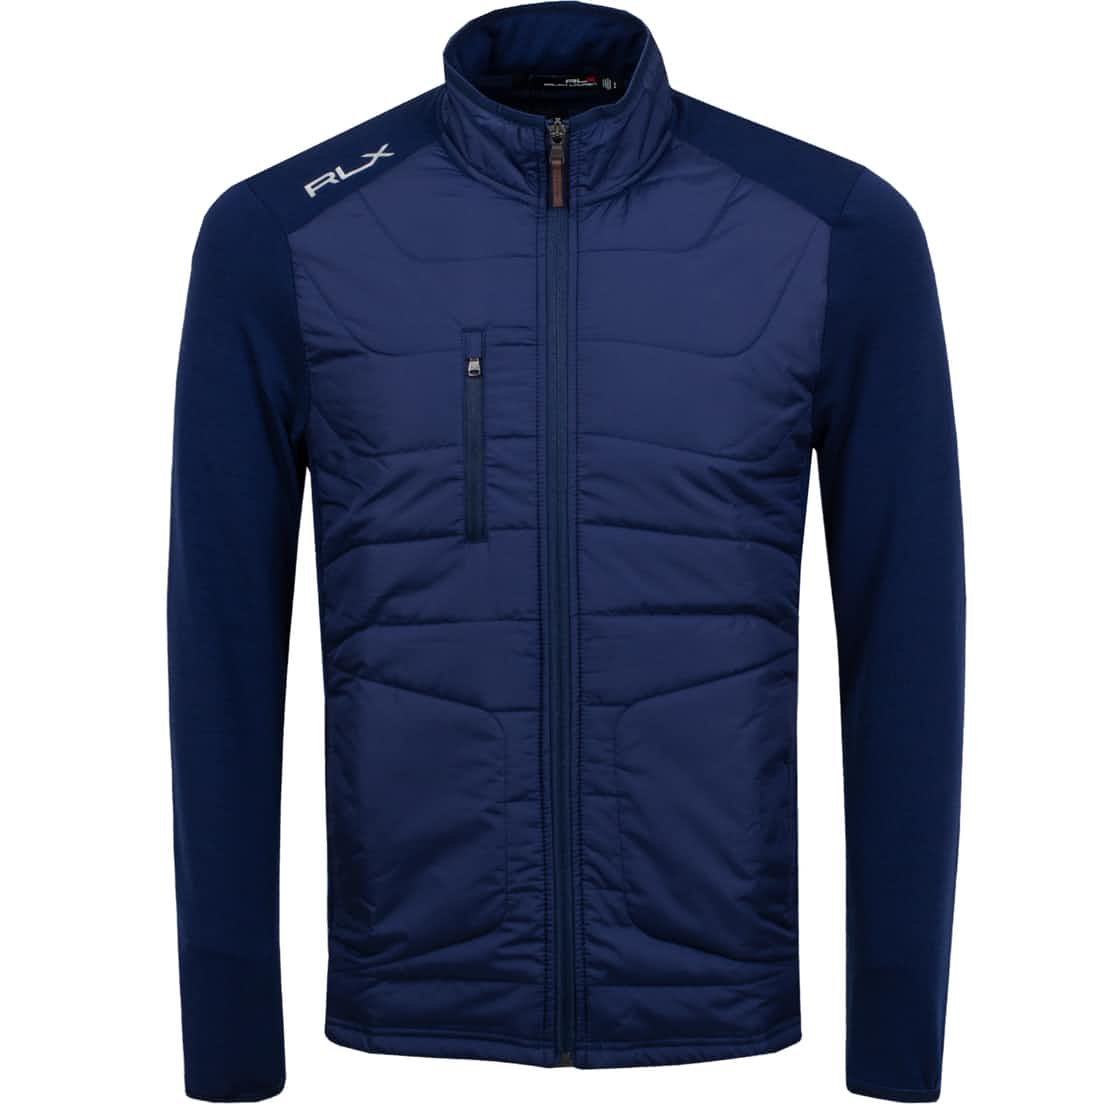 Cool Wool Jacket French Navy - SS20